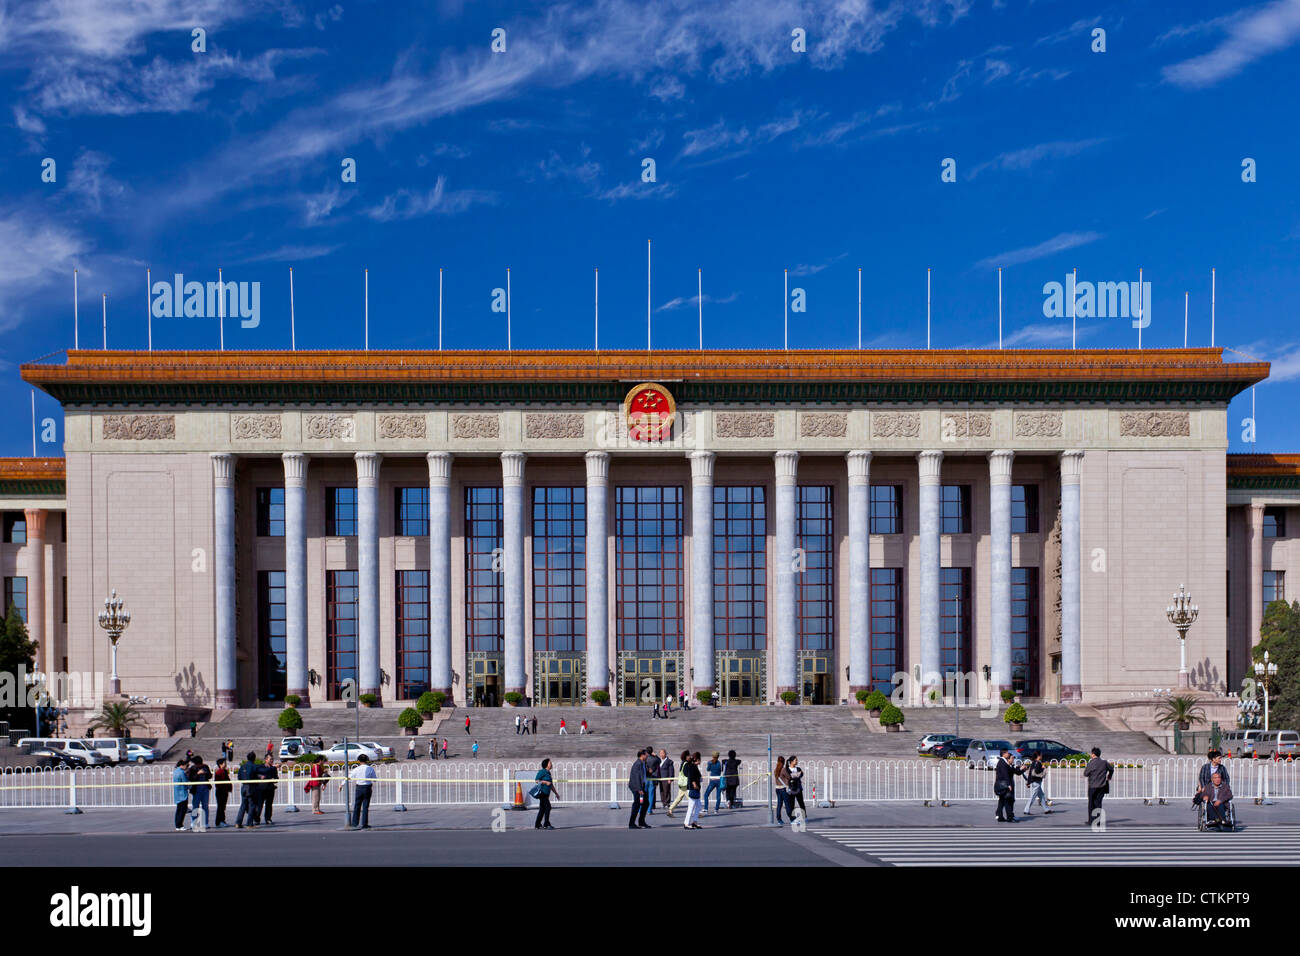 The Great Hall of the People in Tiananmen Square, Beijing, China. - Stock Image